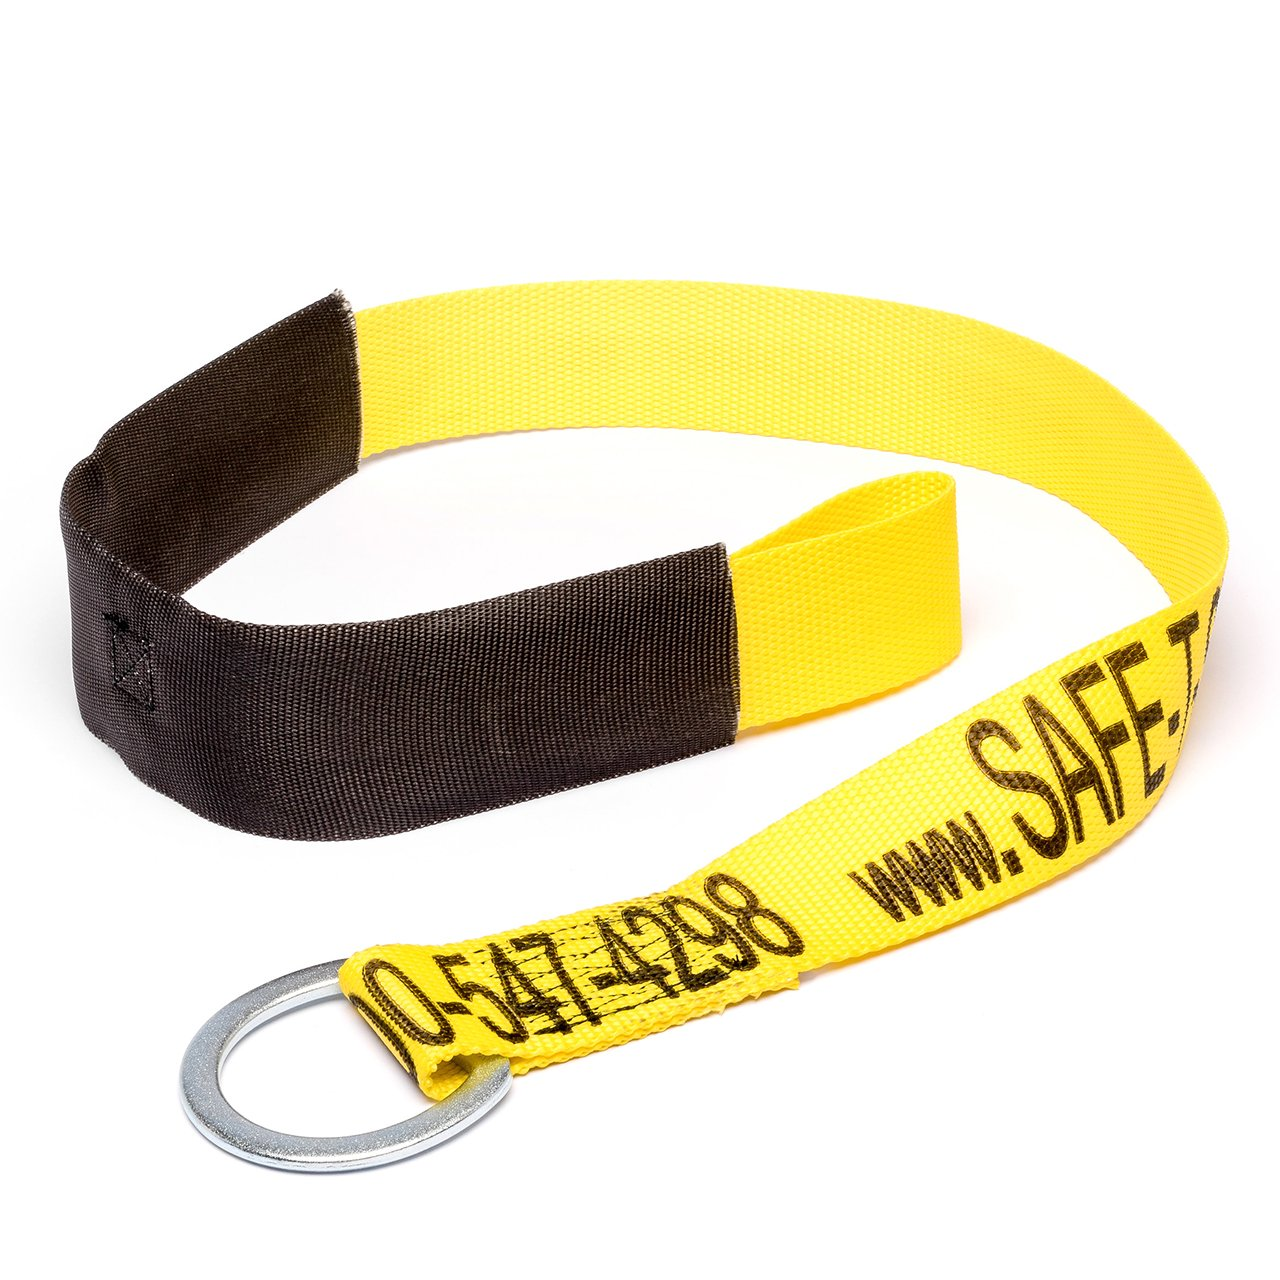 Cross Arm Straps - Fall Protection, Industrial Construction, Tie-Down Concrete Anchors, 4-Feet, Disposable Premium High Rise Safety Straps, Protective Sheathing, D-Ring to Loop Ends